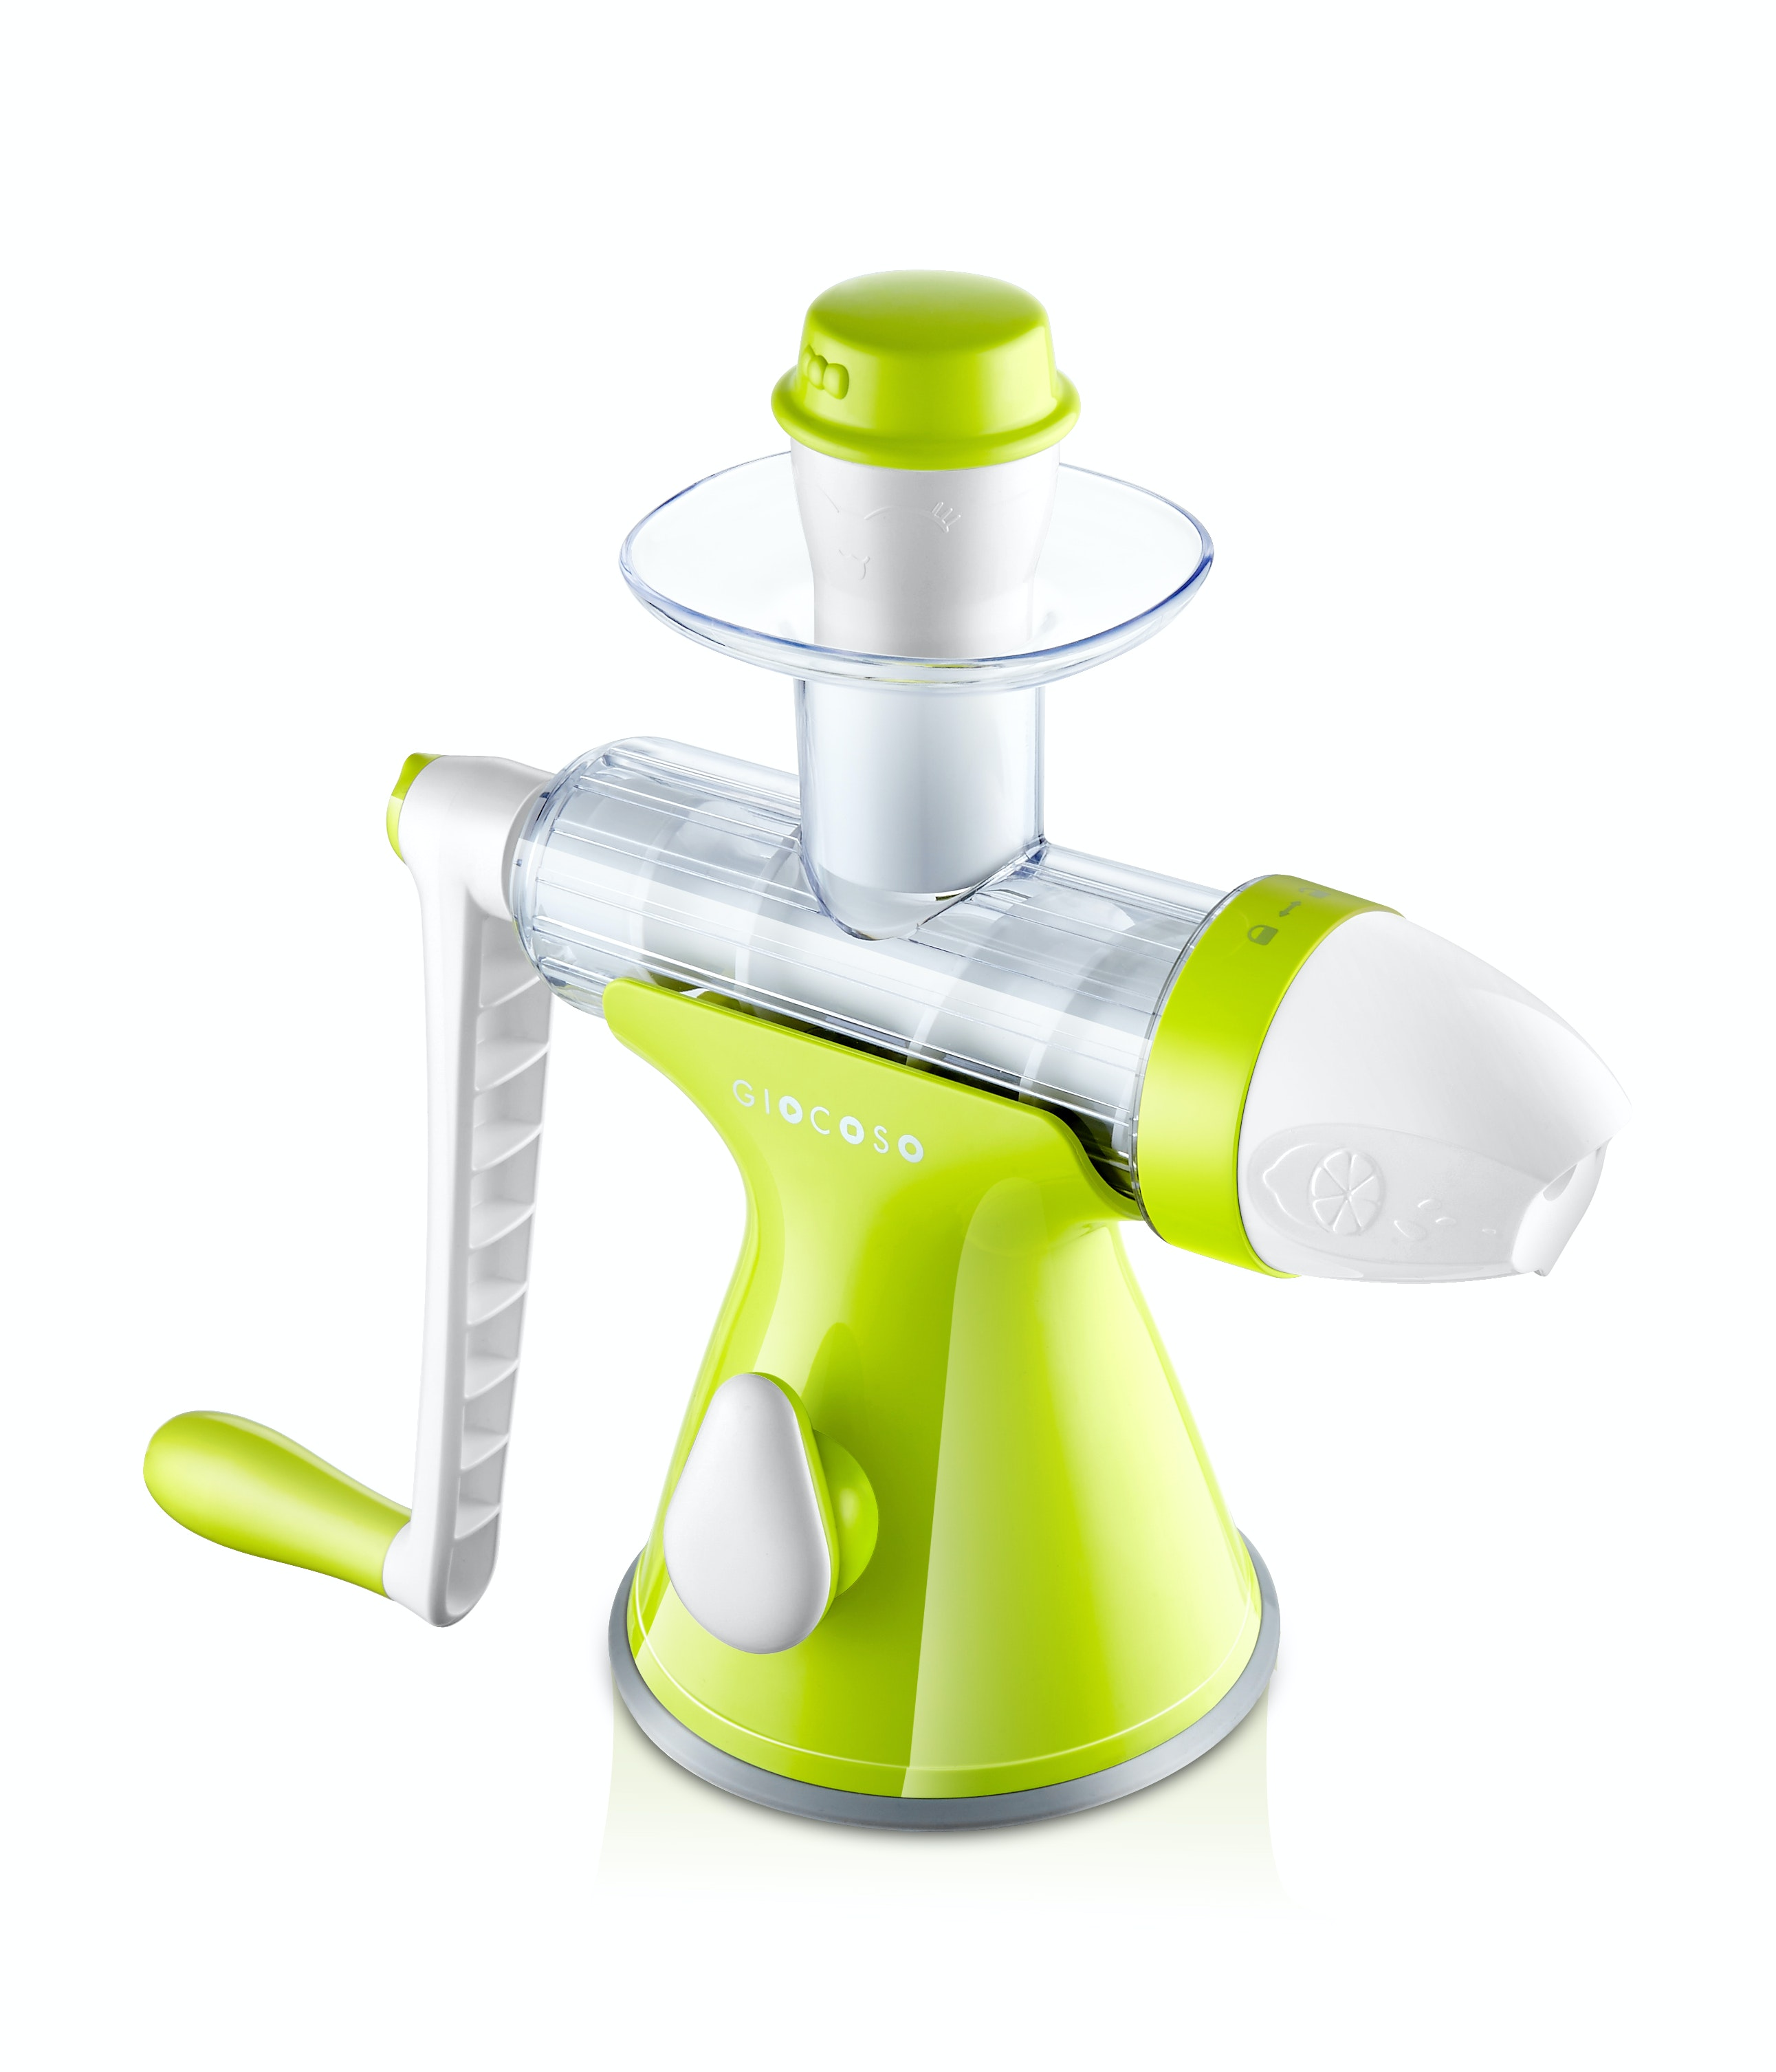 GIOCOSO 2In1 Juicer And Ice Cream Maker